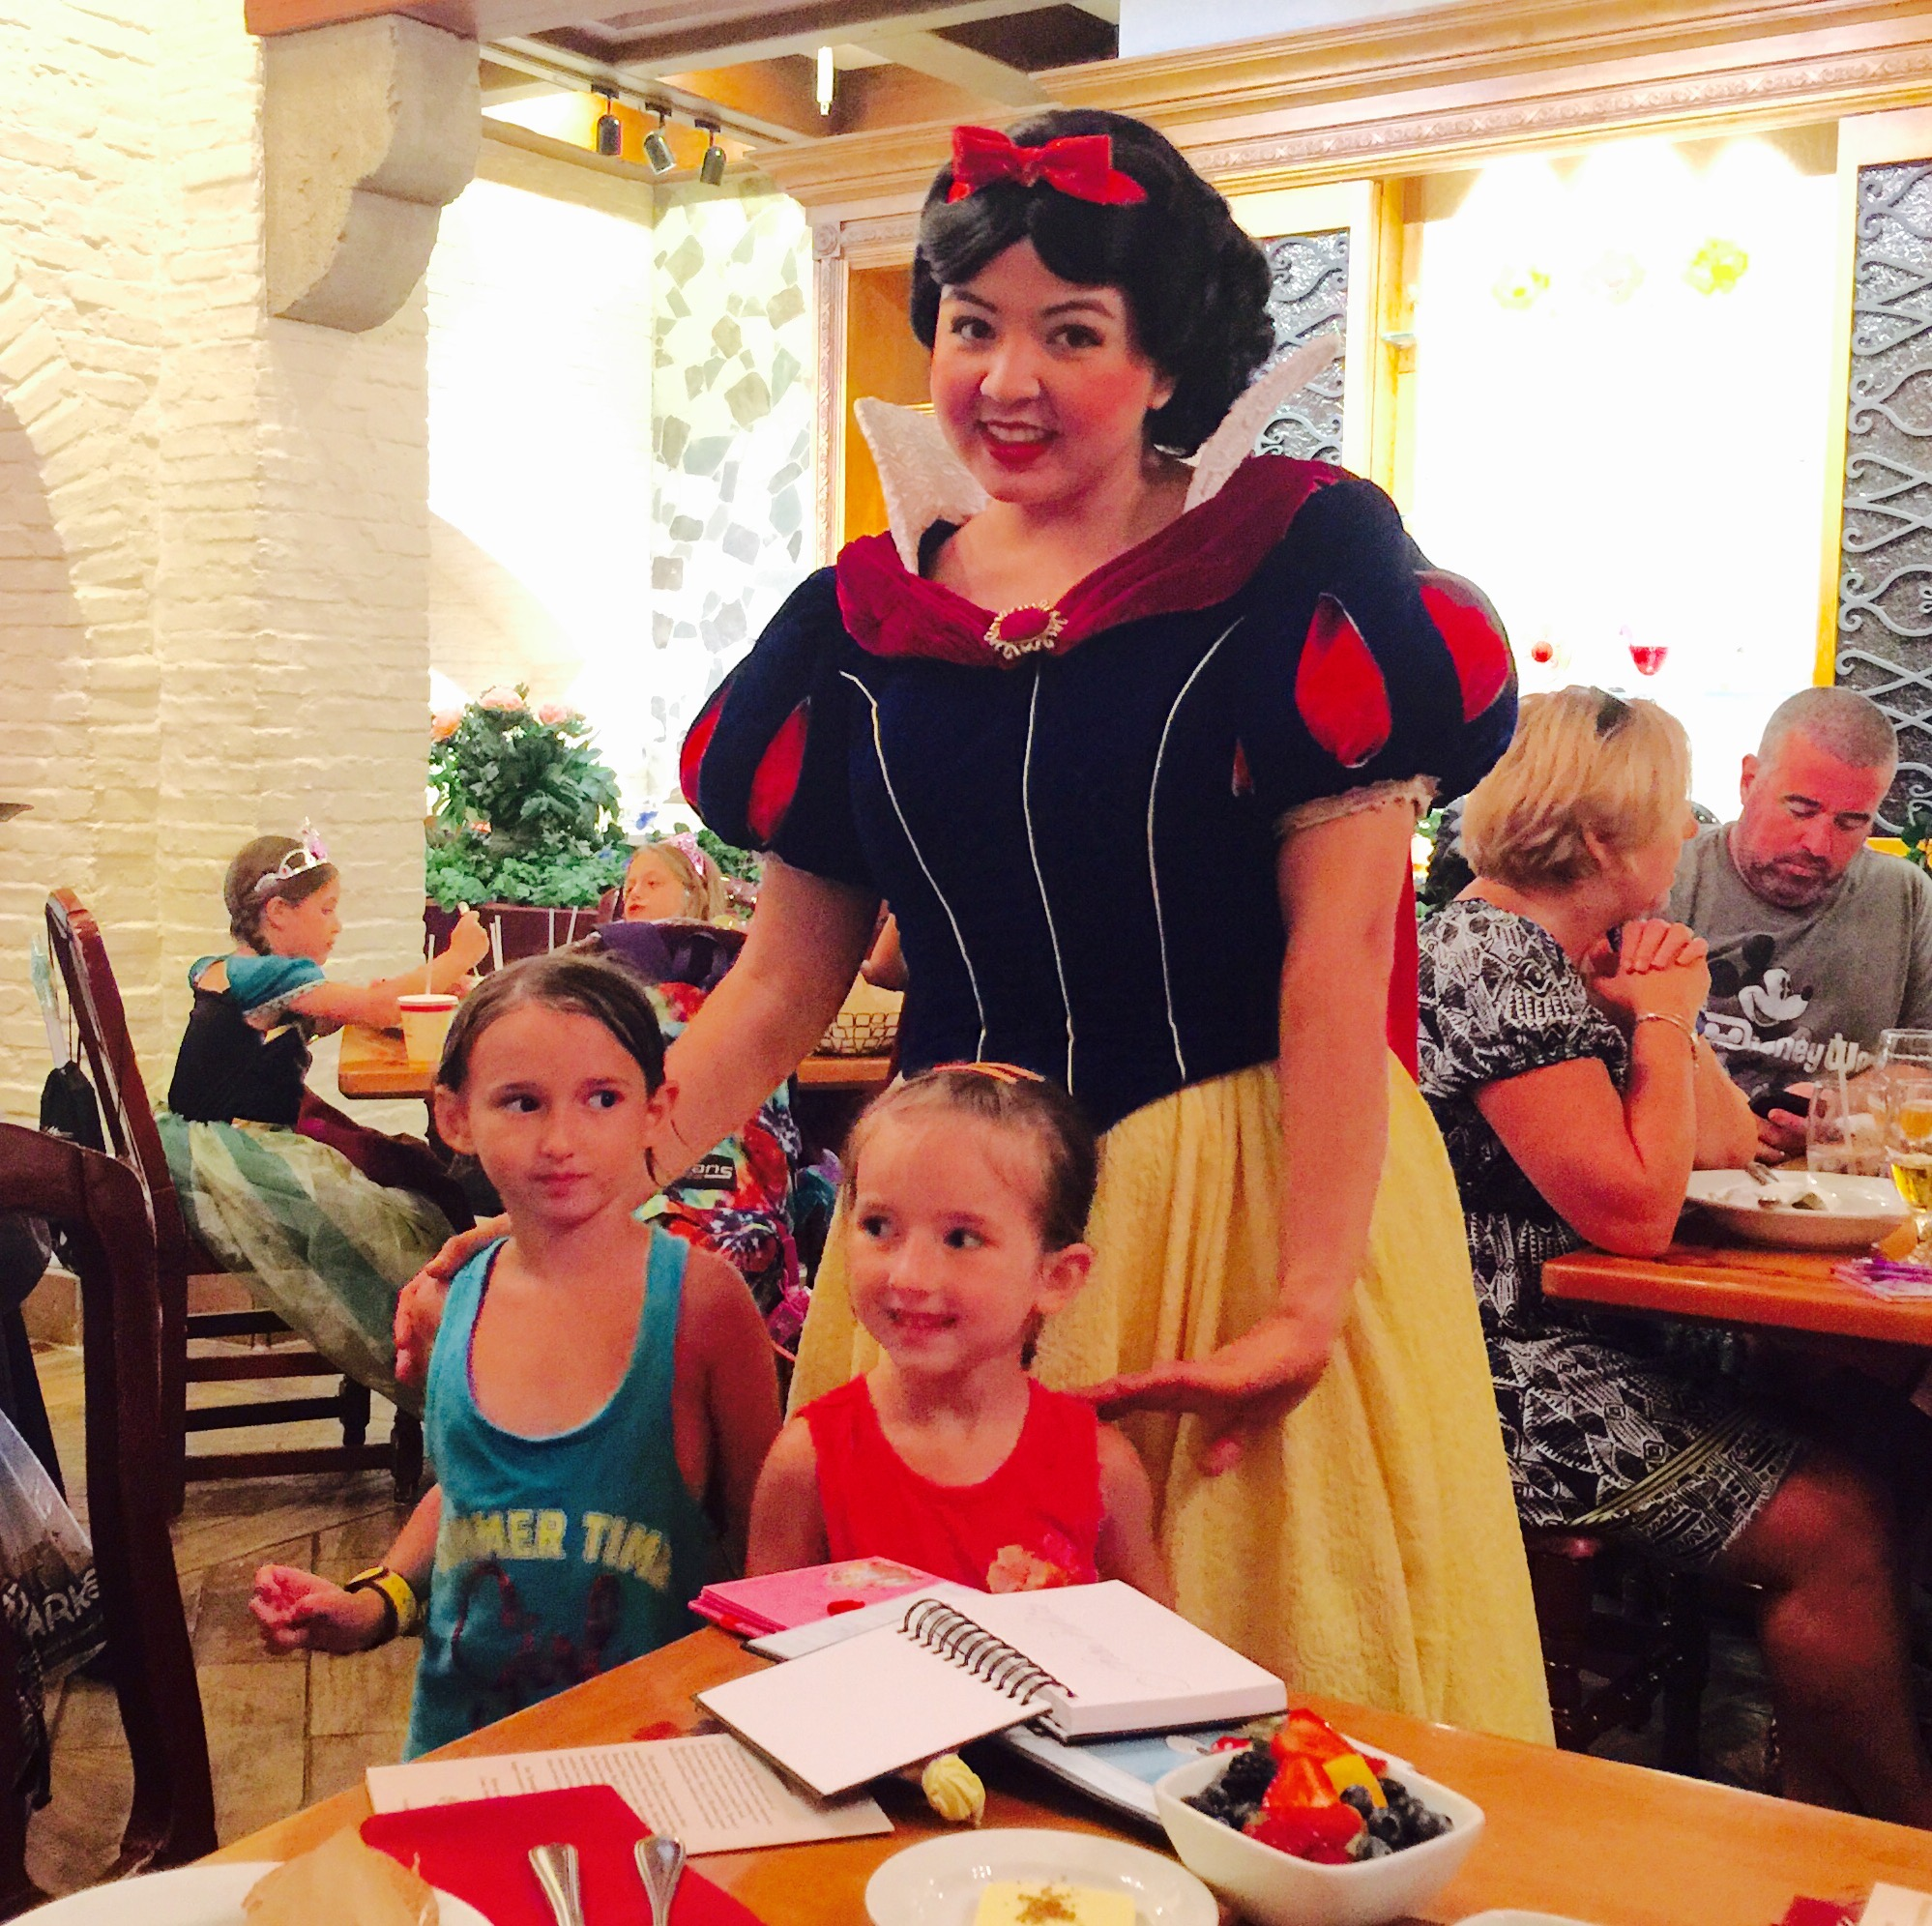 Snow White at Akershus Royal Banquet Hall in Summer 2015